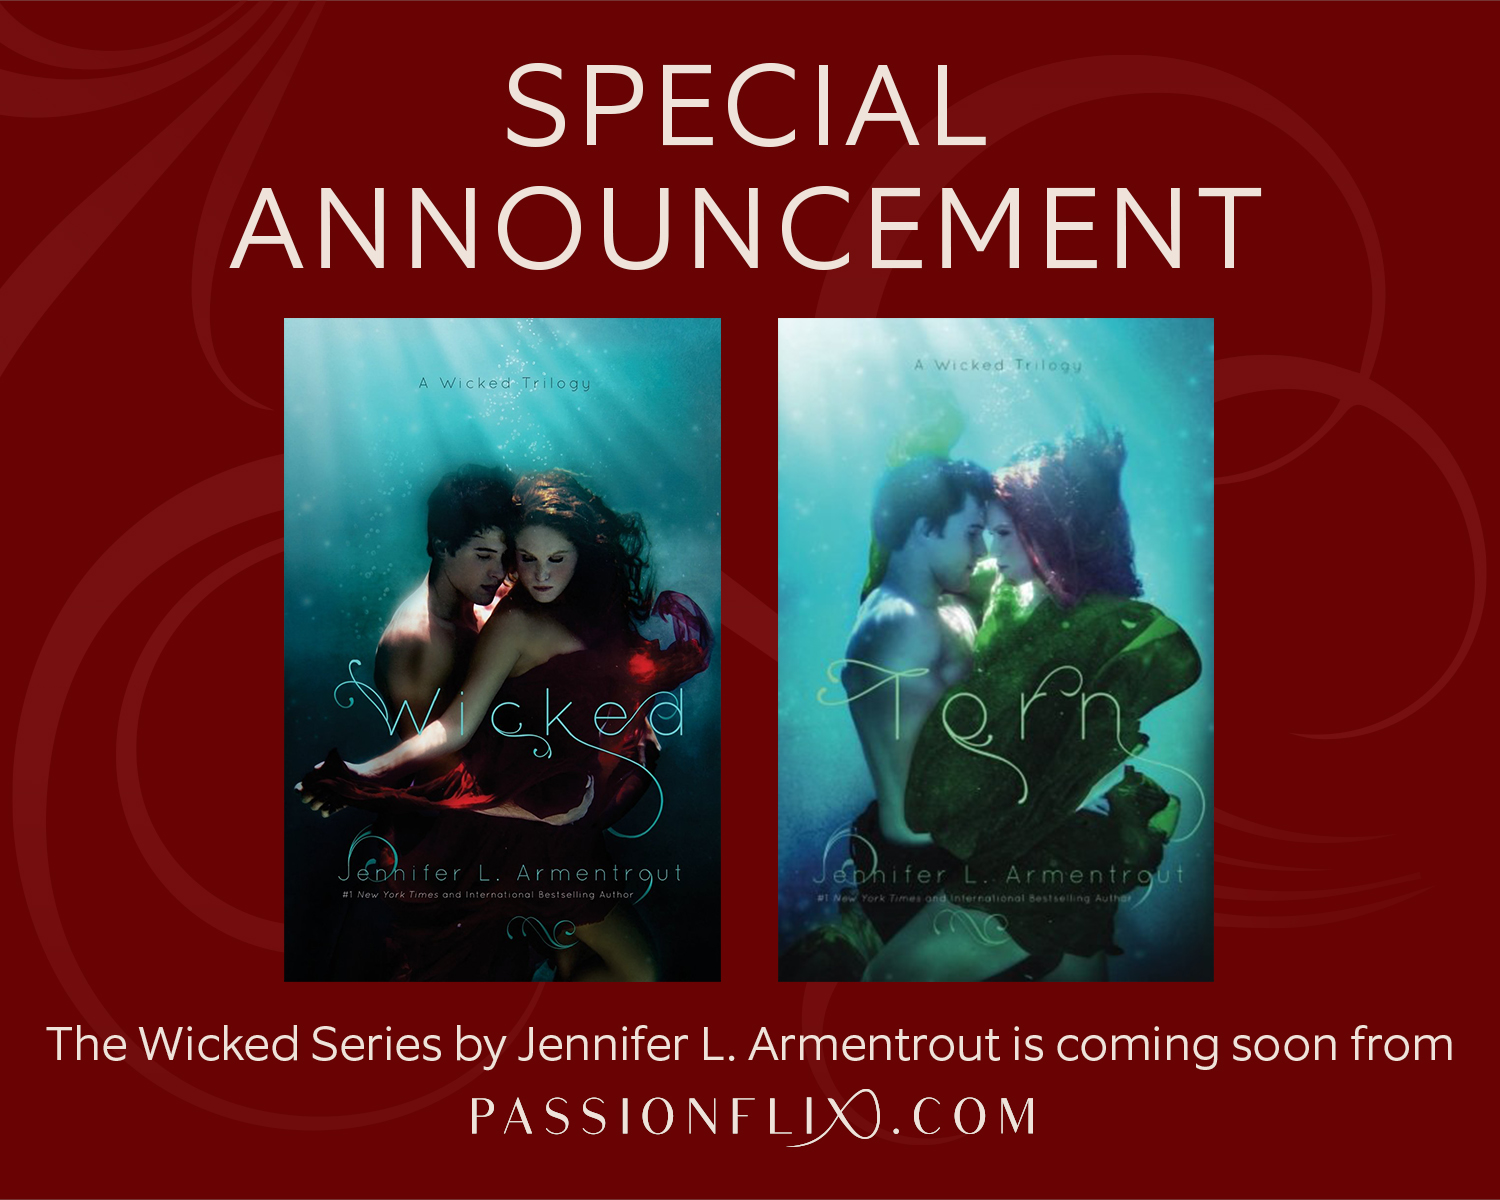 Special Annoucment_WICKED SERIES_static graphic_red rose.jpg